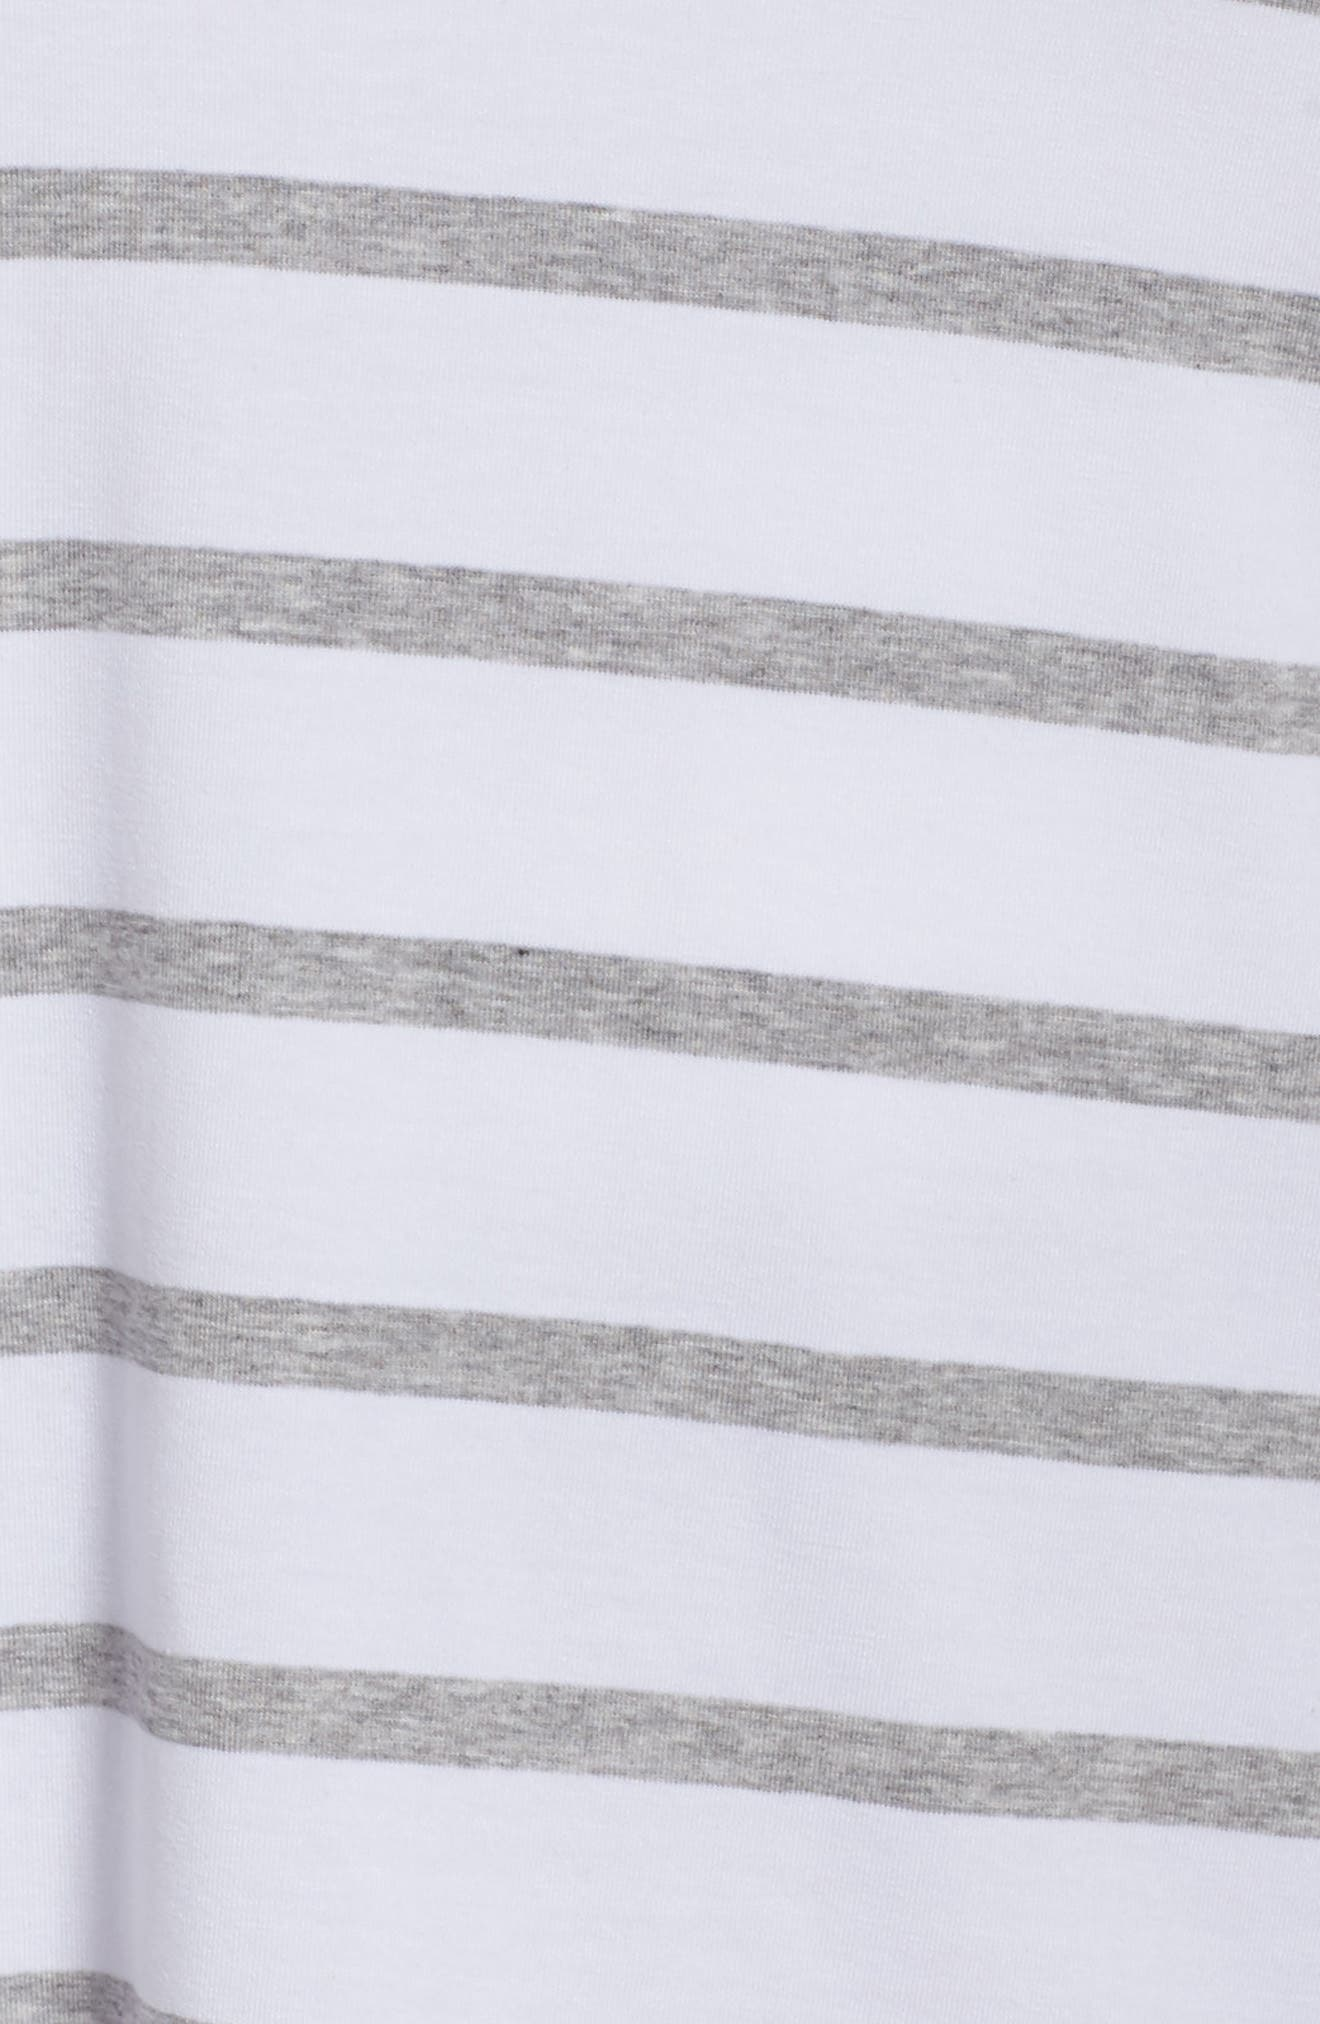 Stripe Stretch Tencel<sup>®</sup> Lyocell Top,                             Alternate thumbnail 6, color,                             White/ Dark Pearl